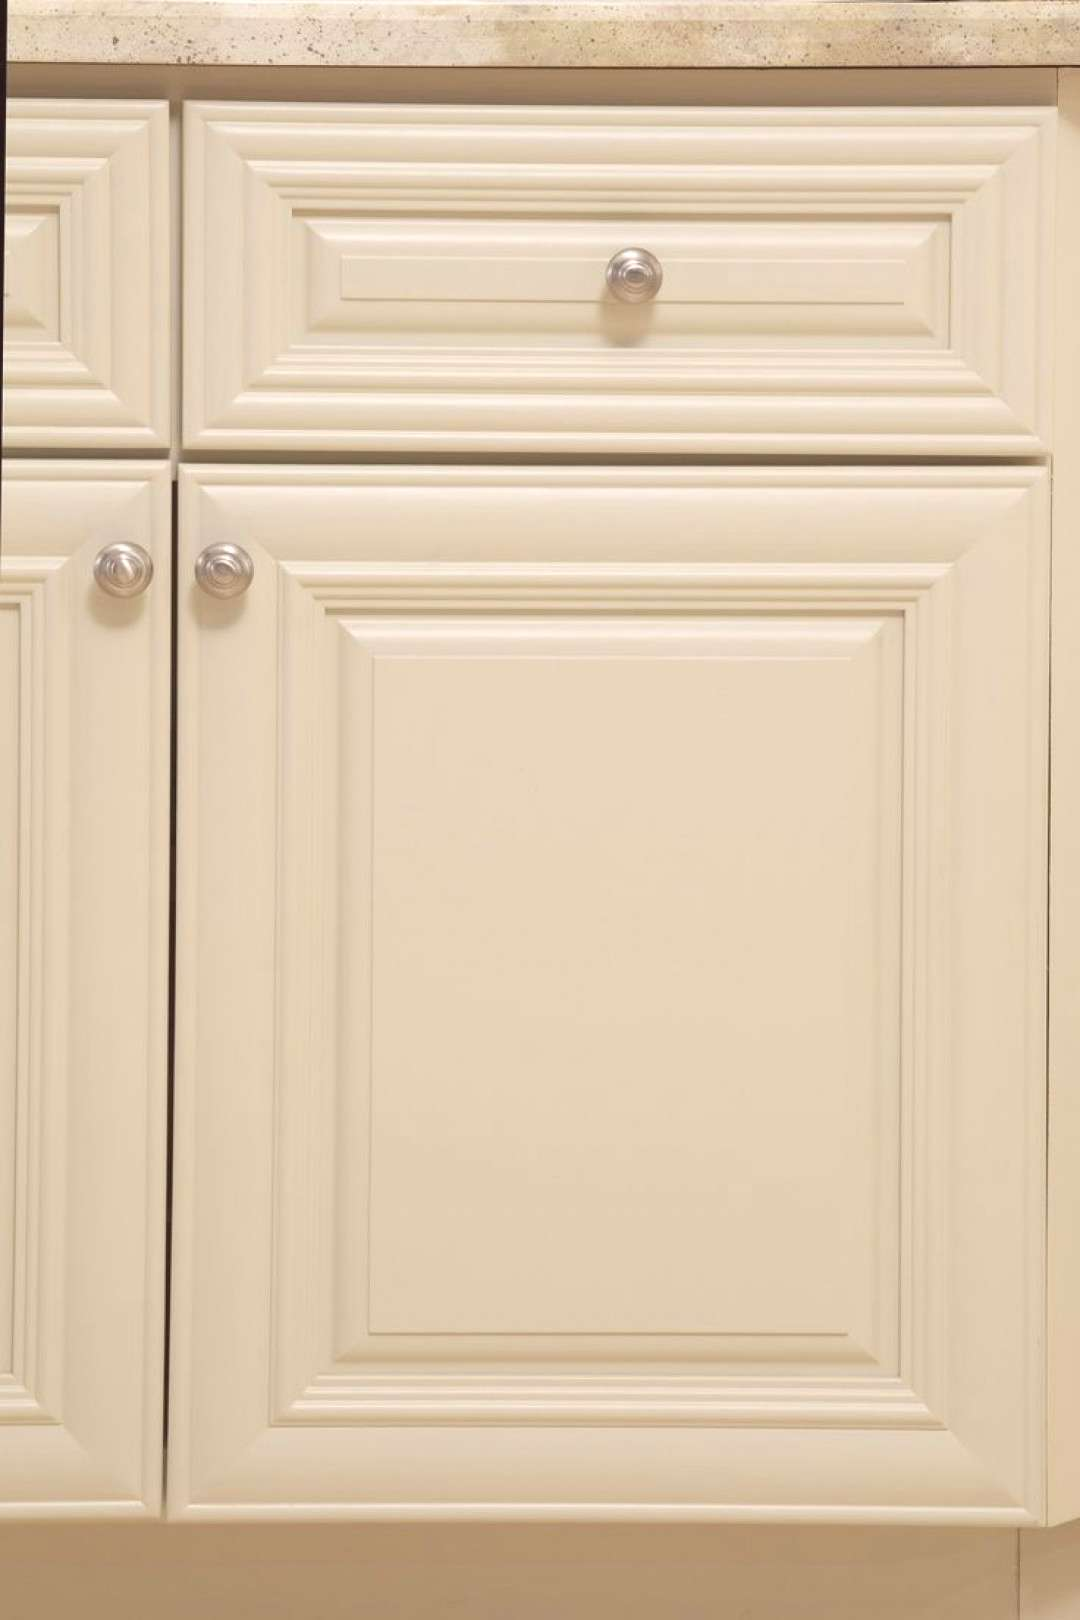 Cabinets To Go B. Jorgsen amp Co. Victoria door style in Ivory to go victoria ivory